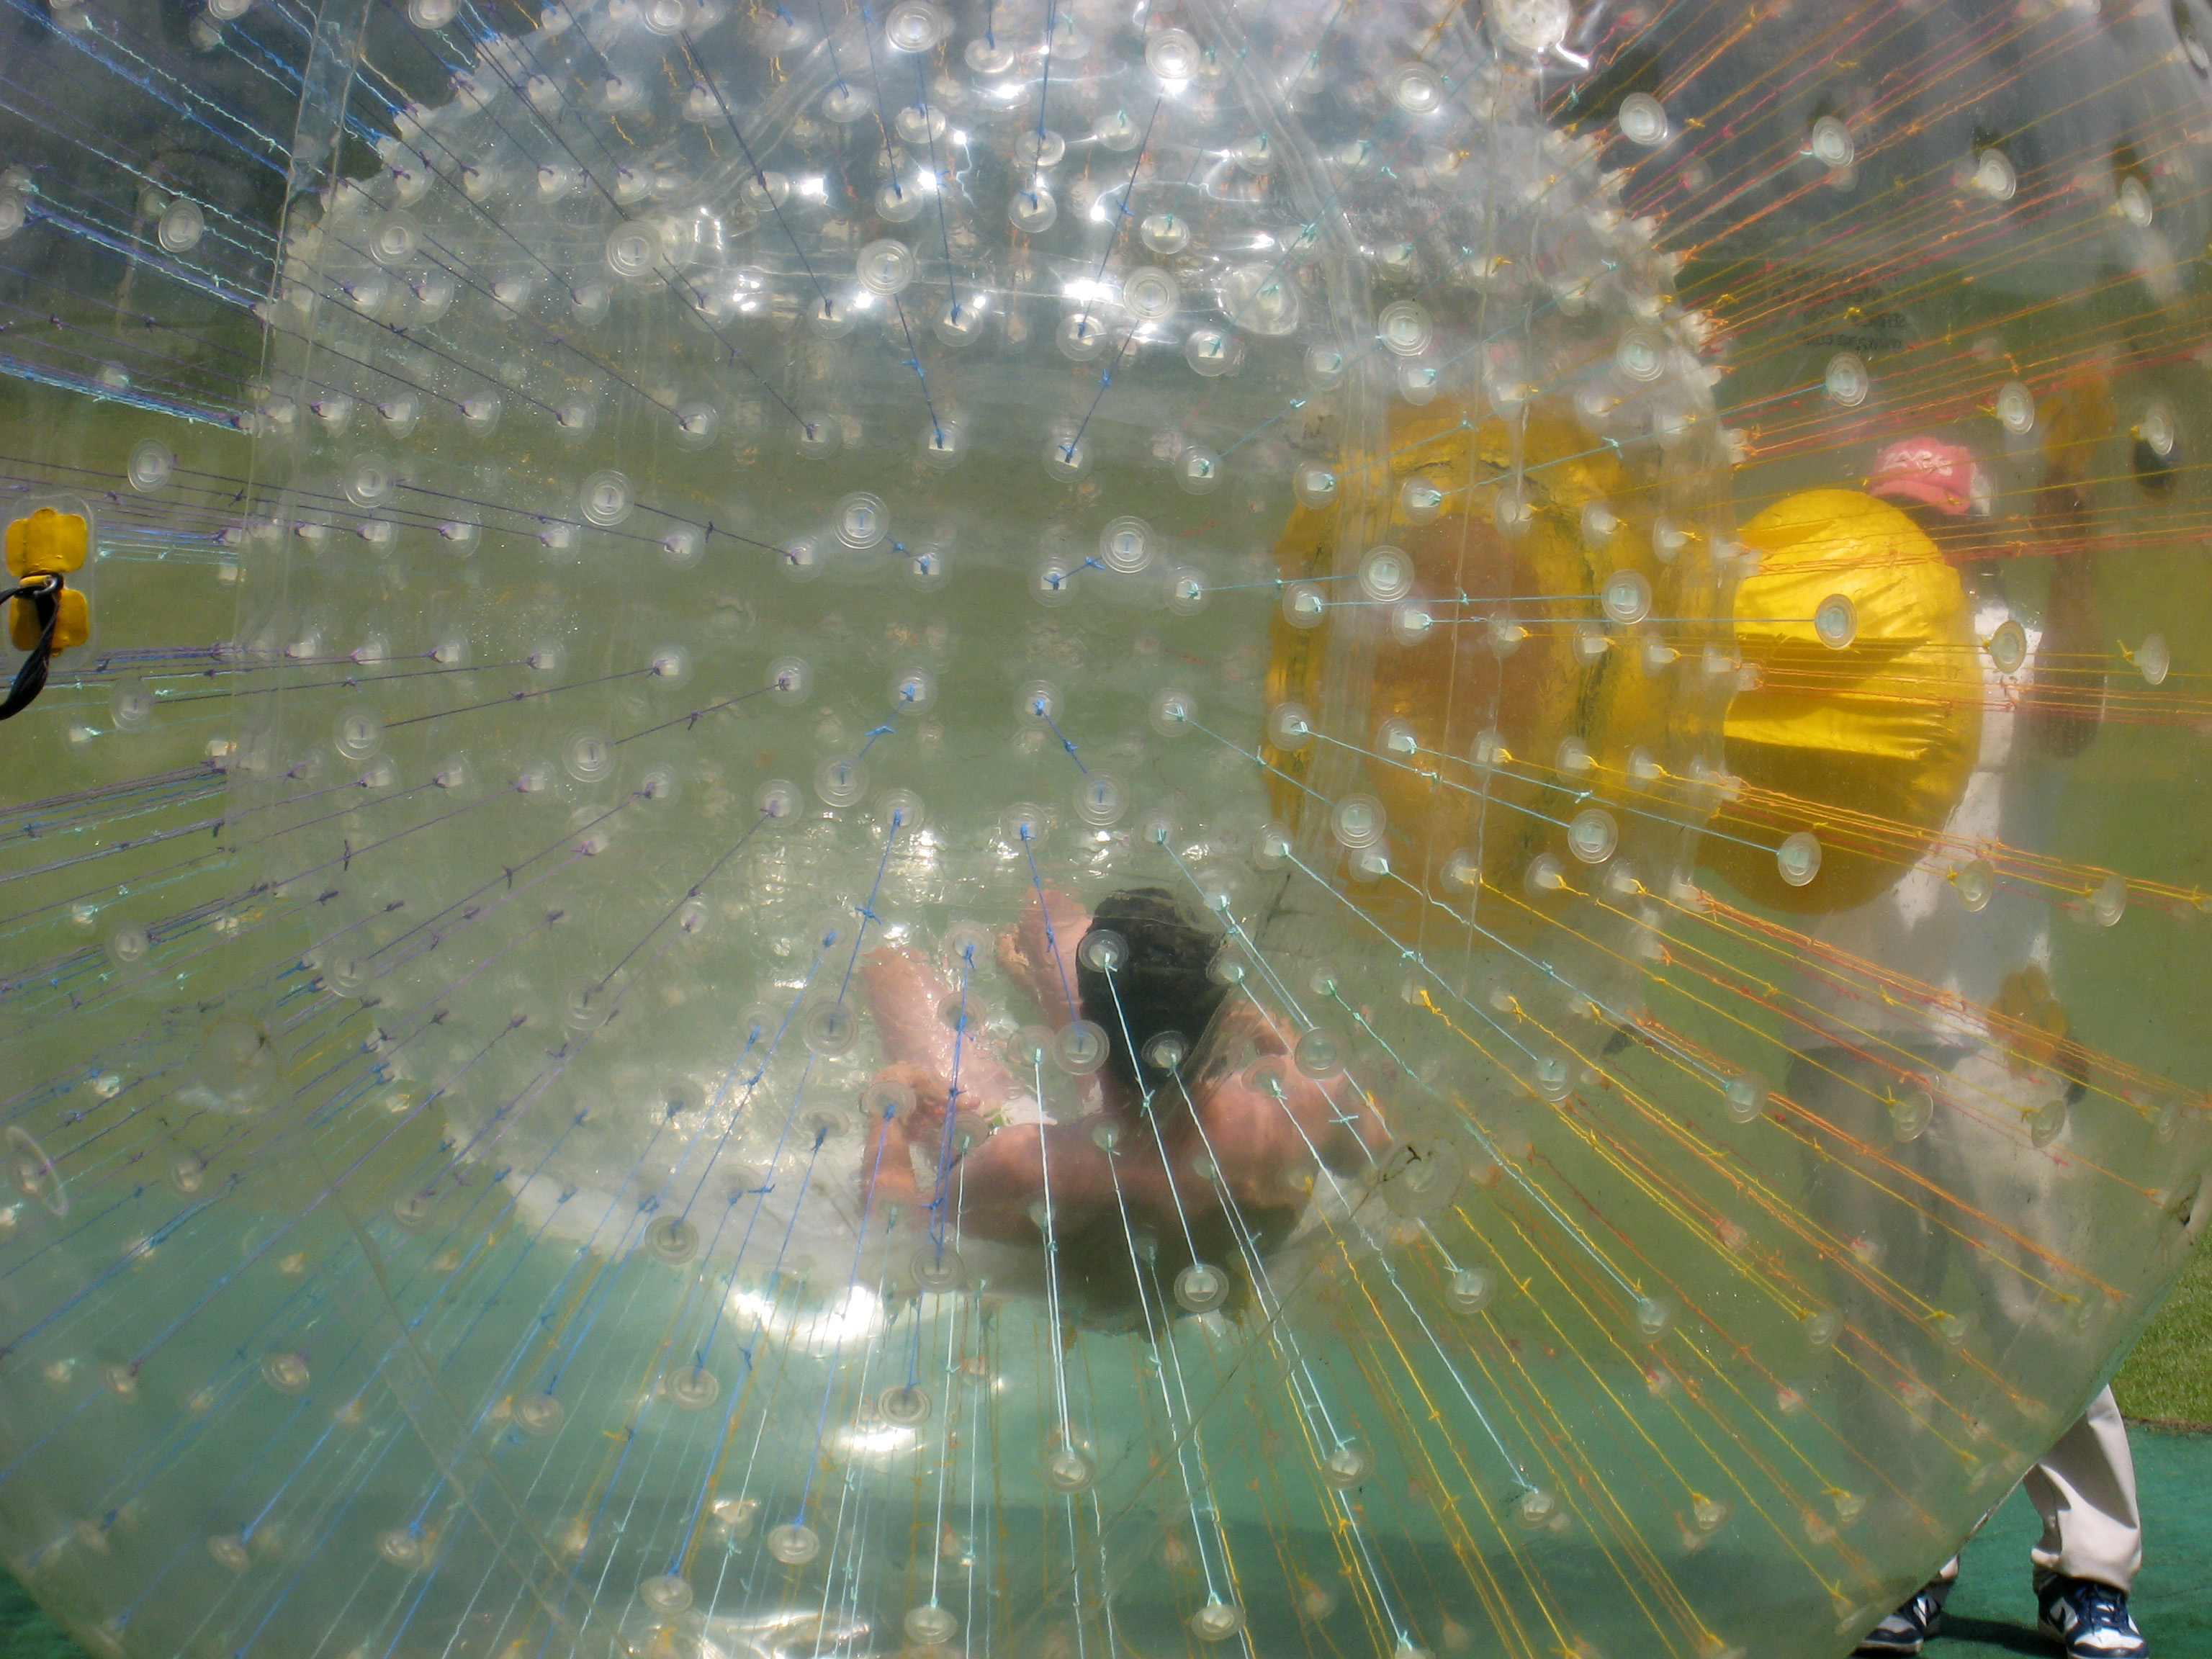 A man getting ready to zorb